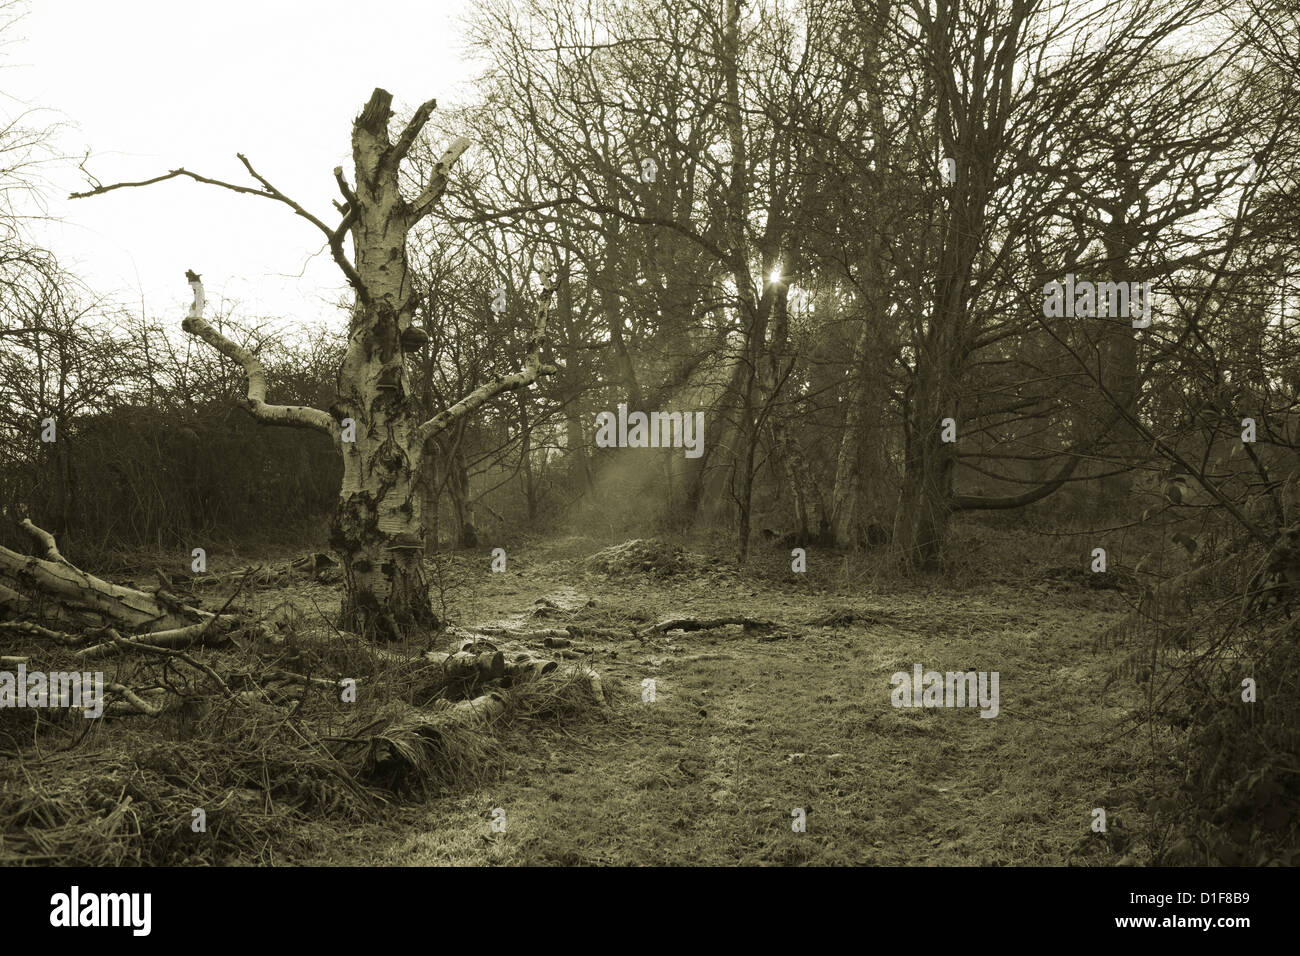 Lightening struck tree with rays of light passing through it - Stock Image